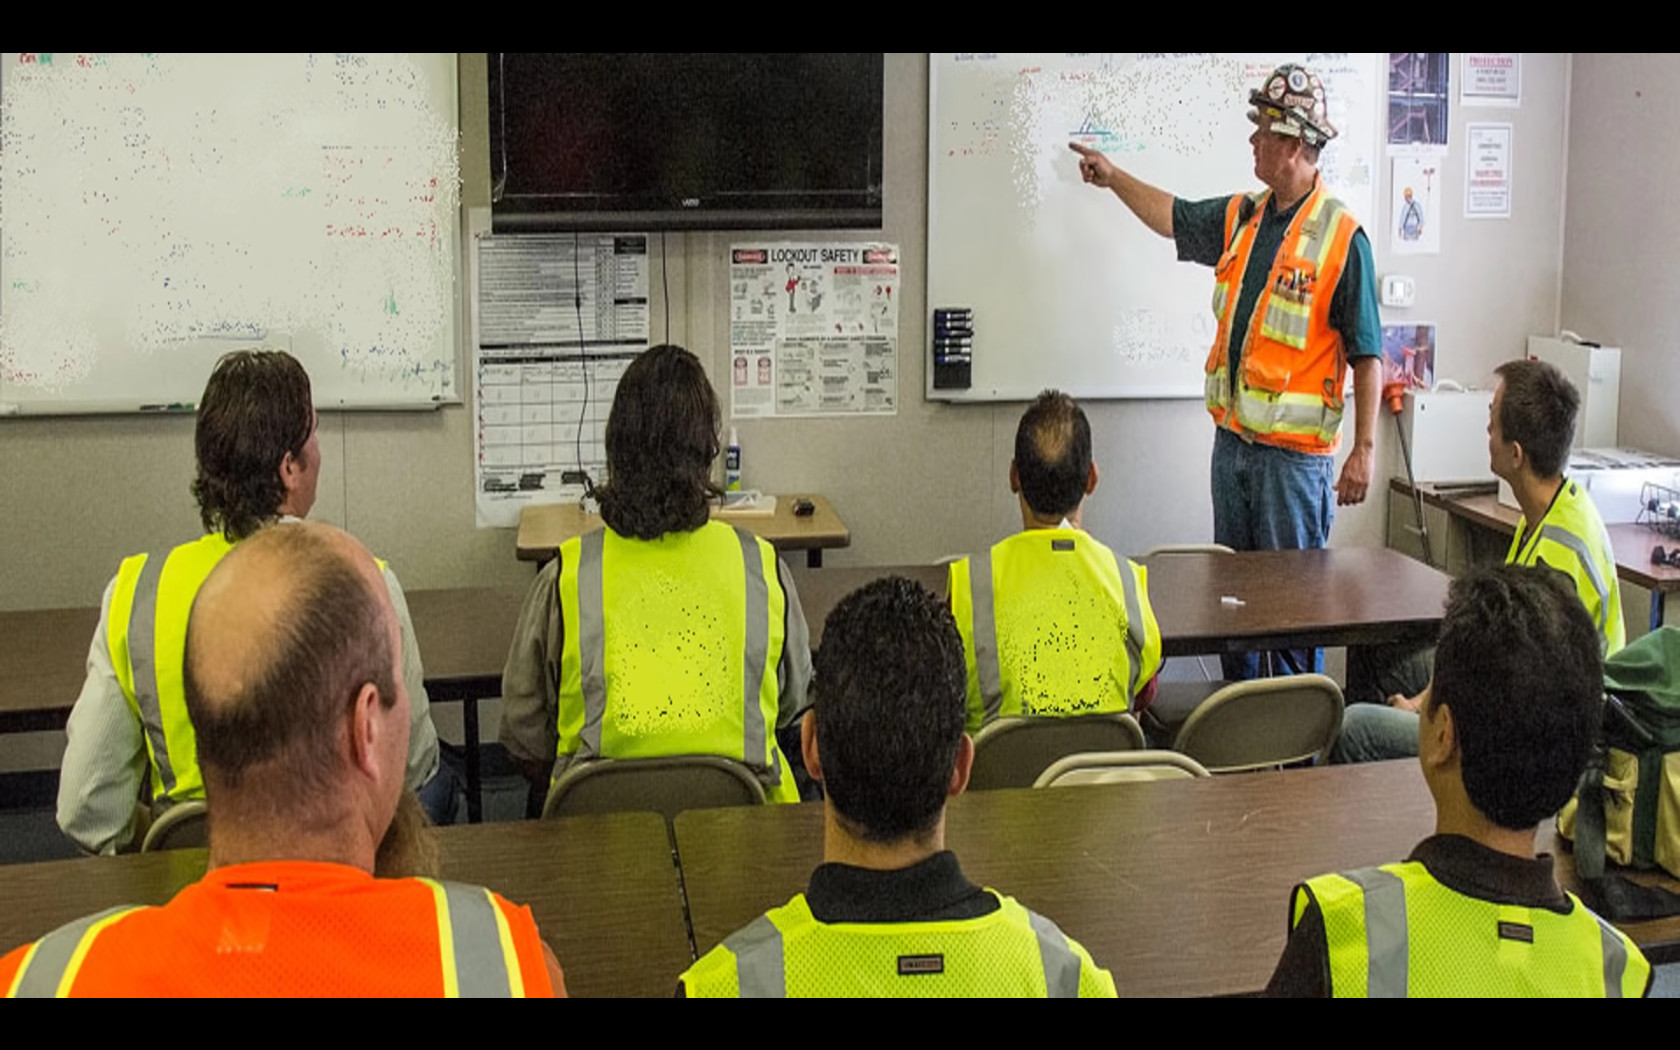 Safety Training Video with Audience Response